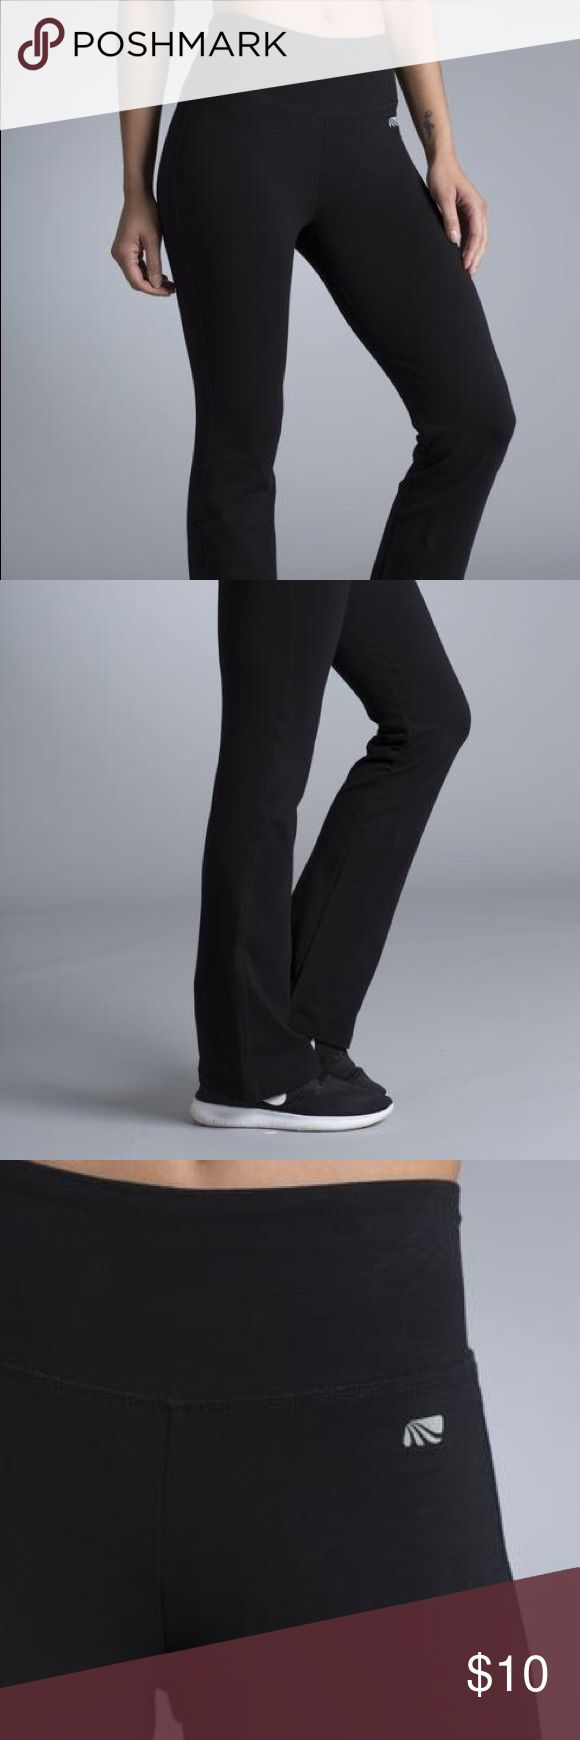 Marika Magic Performance Yoga Pants black marika magic performance tummy control yoga boot leg pants, stretch cotton blend fabric with power mesh at the waistband for tummy control, machine wash. logo is slightly coming off and words on the label are no longer decipherable, otherwise great condition. bottom part may be a little wider than stock photo Marika Pants Boot Cut & Flare